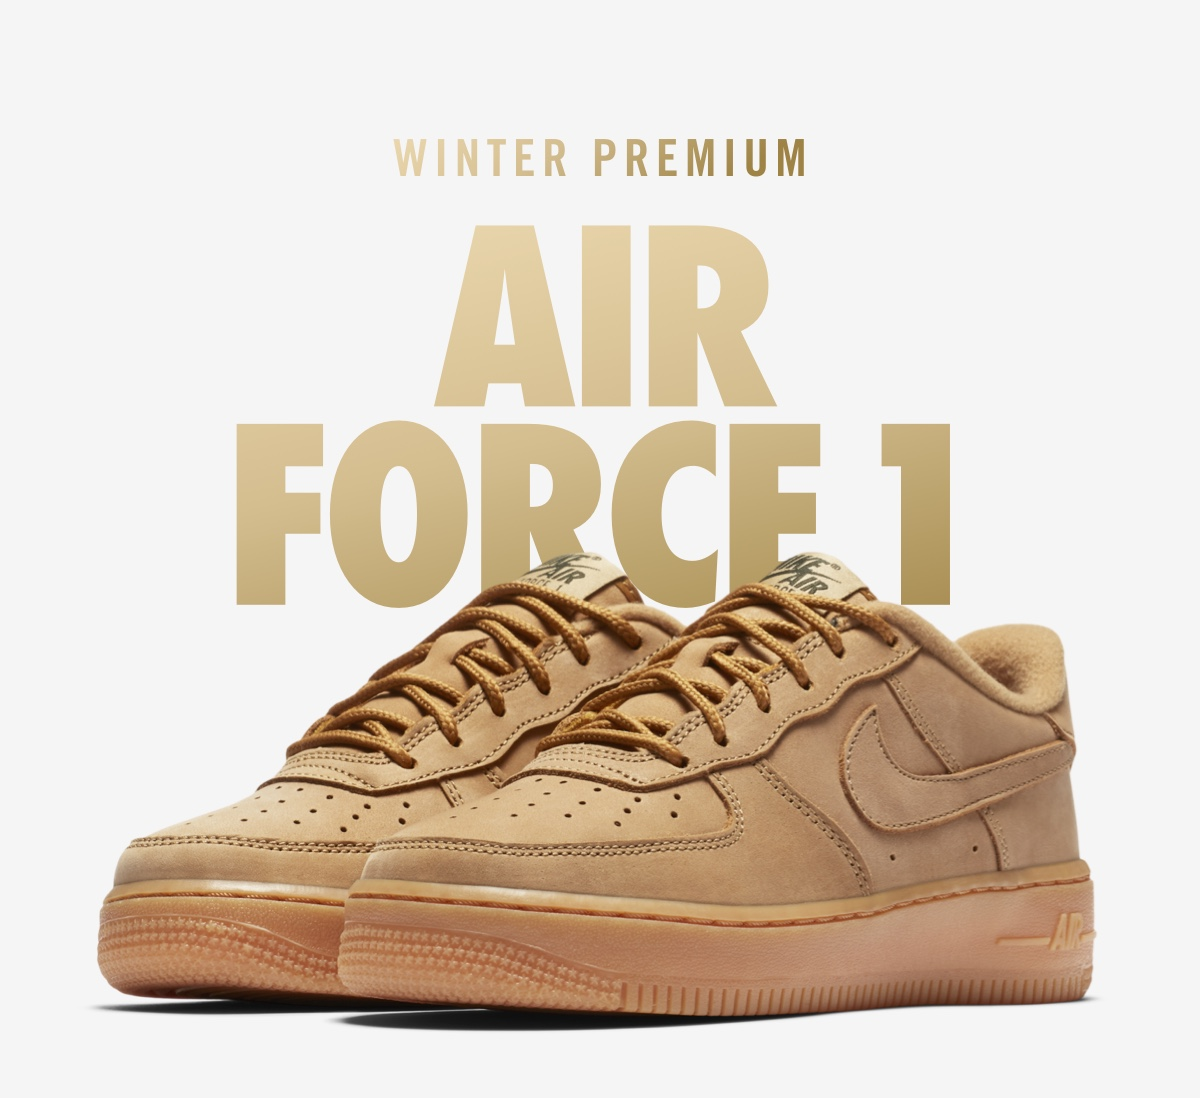 WINTER PREMIUM | AIR FORCE 1